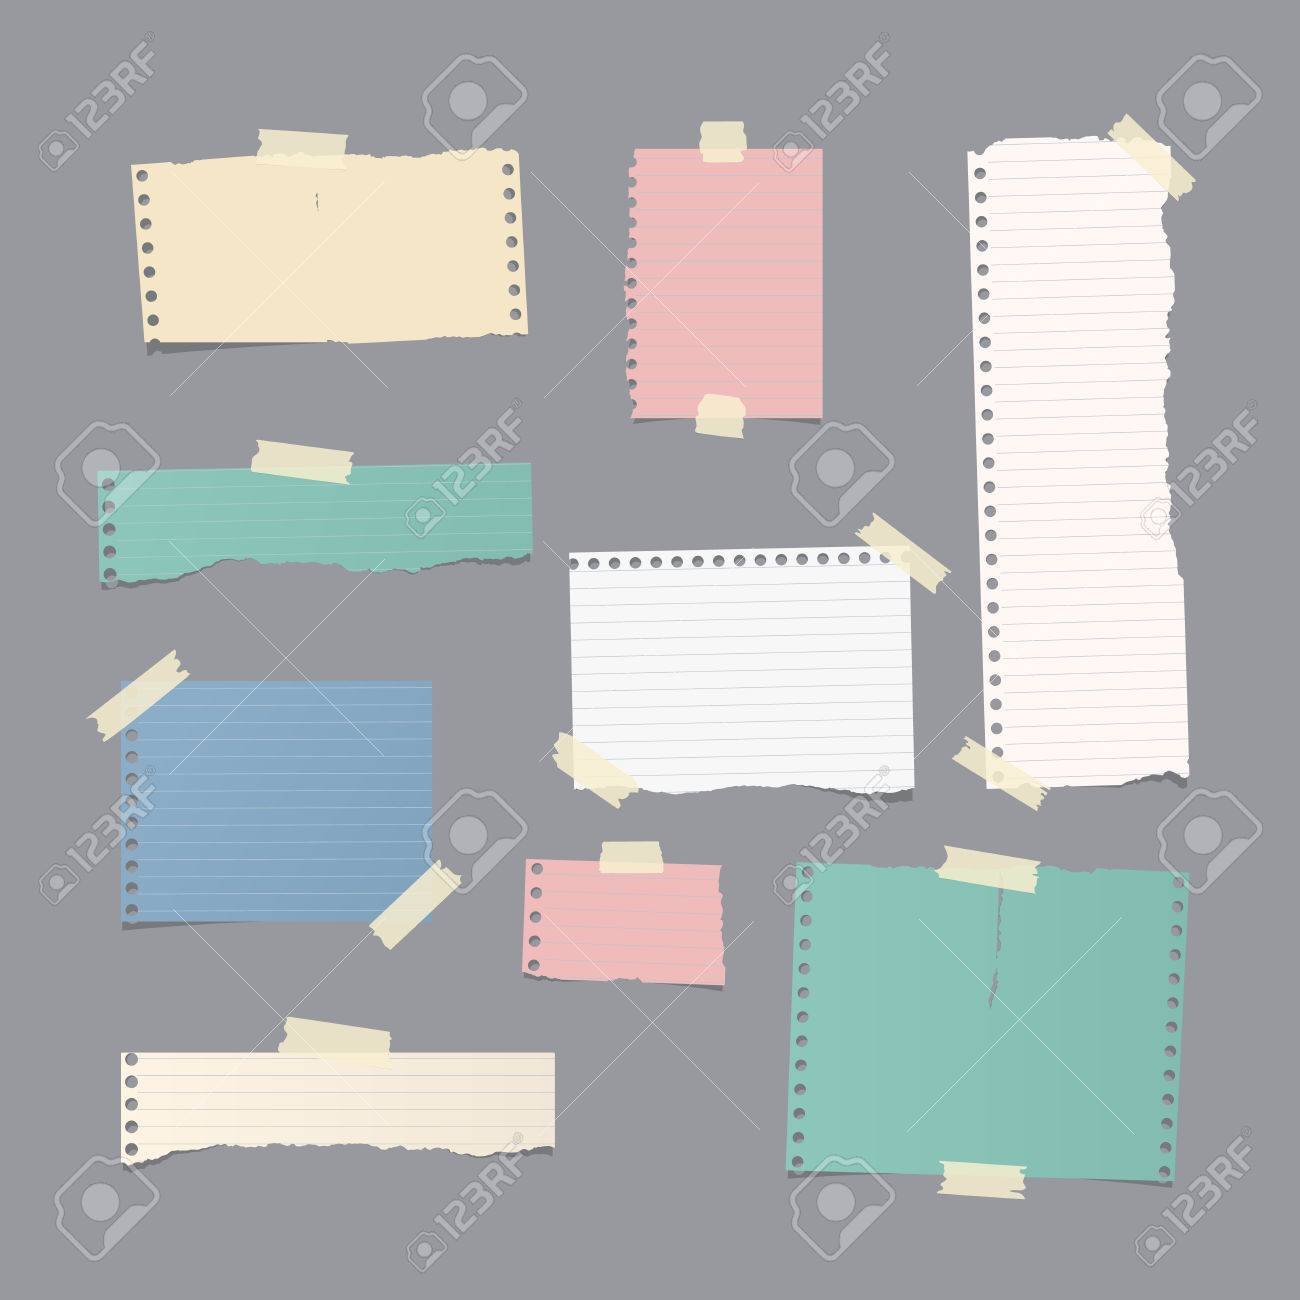 Pieces Of Different Size Ruled And Blank Colorful Note, Notebook ...